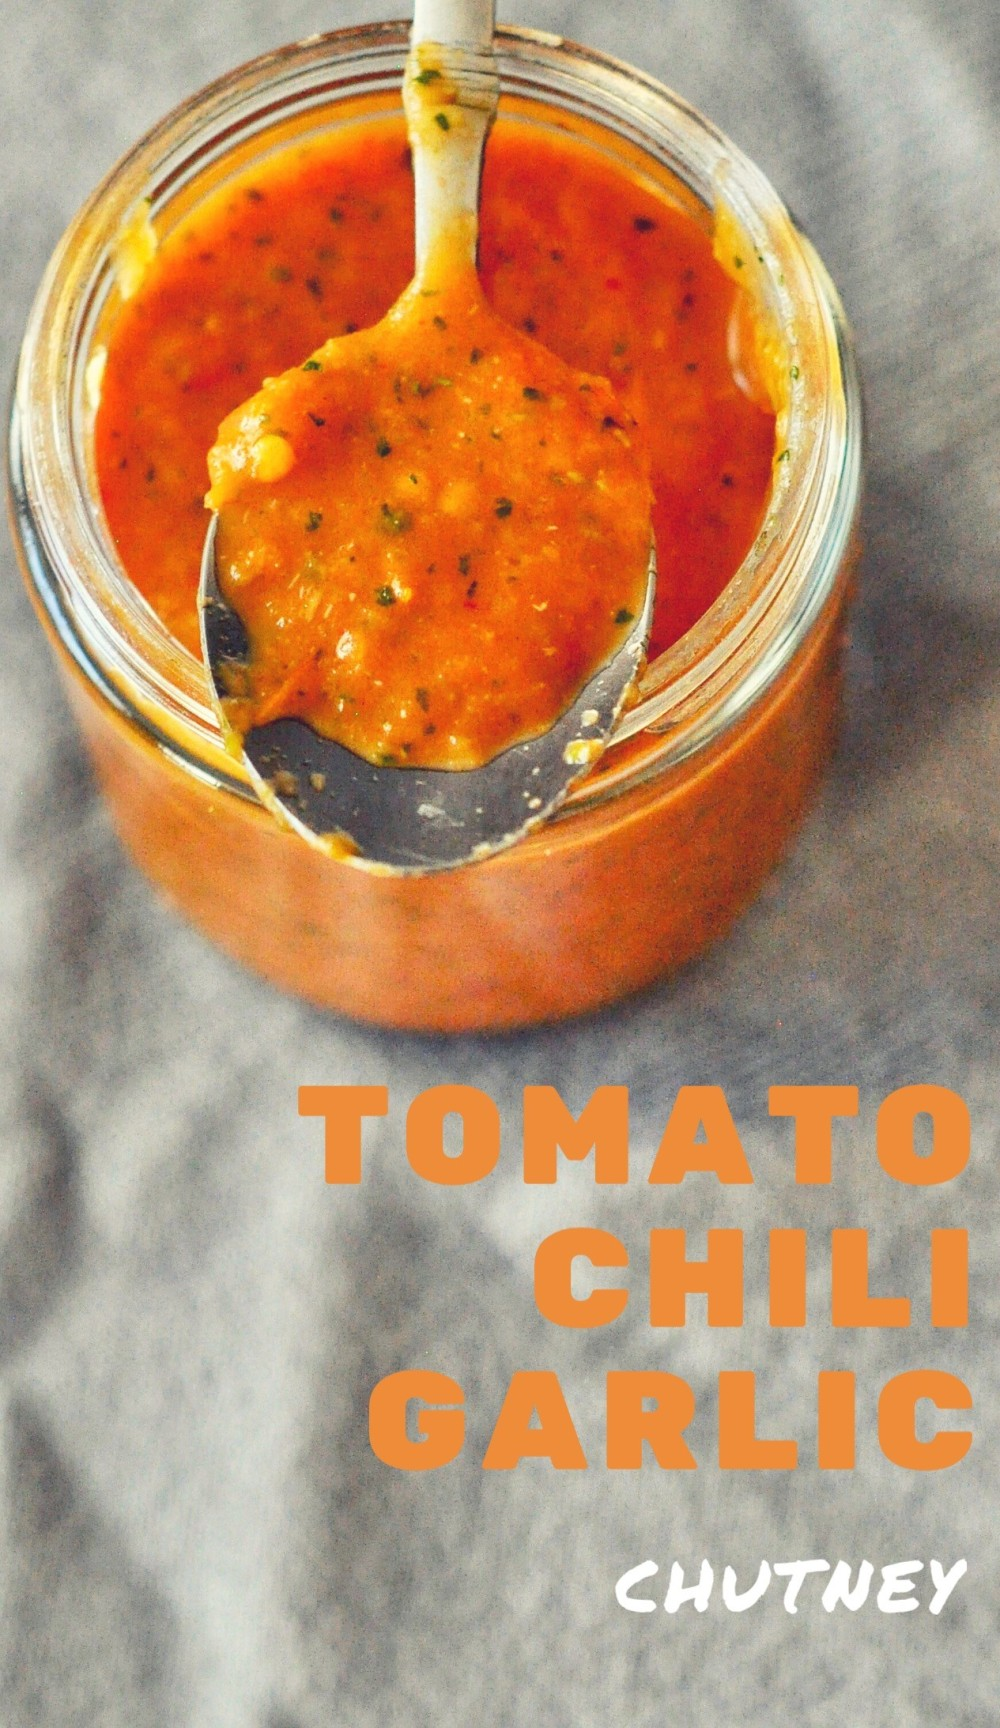 This tomato chili garlic chutney is packed with flavors. Slather it on toasts or cheese or crackers or even use as a spread for sandwiches. It would also make a great edible gift with homemade bread or crackers.